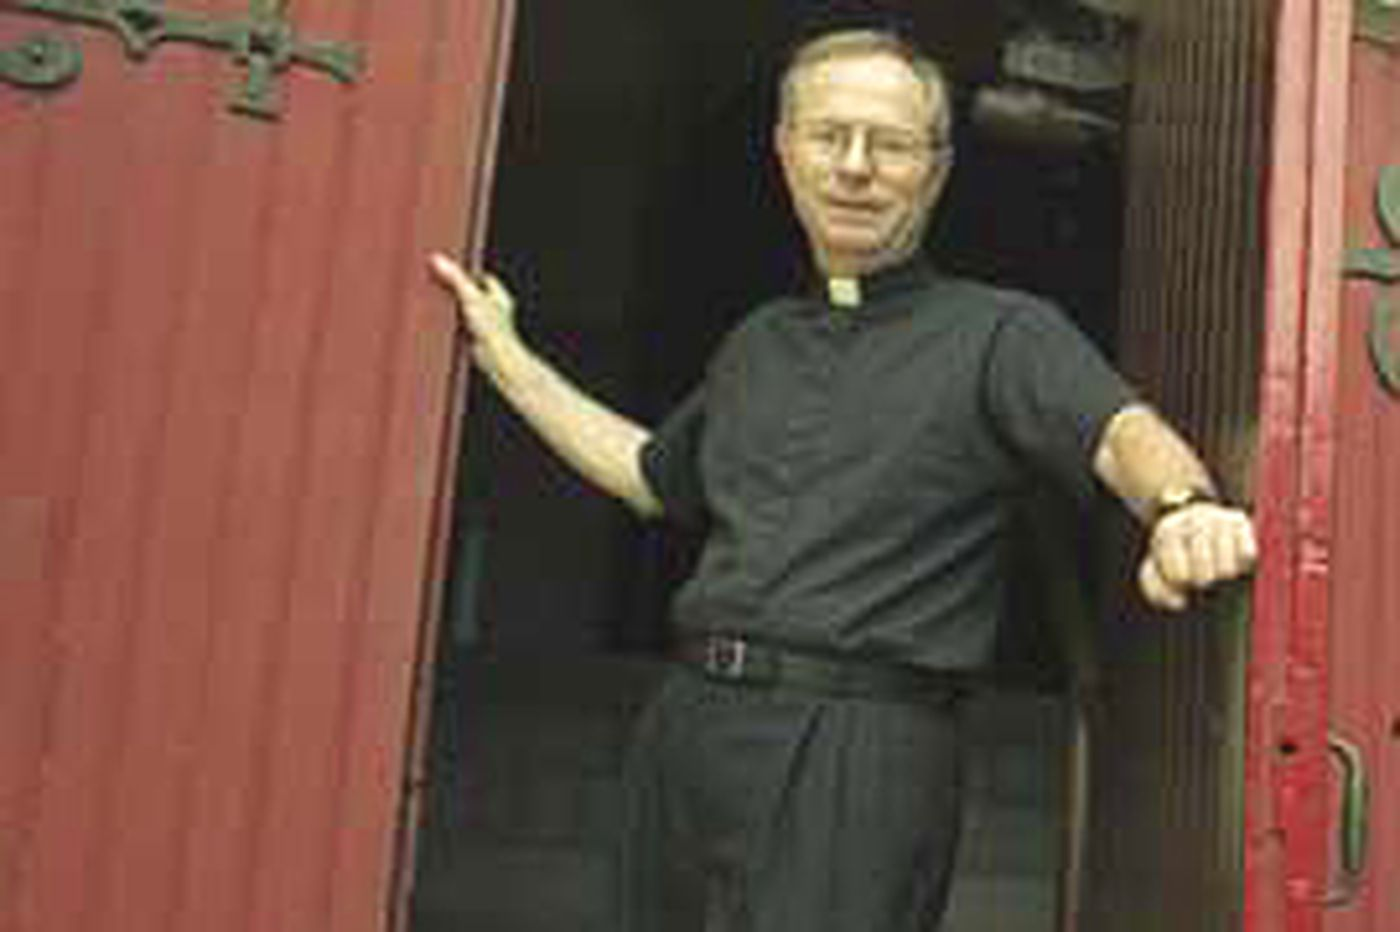 Years after abuse complaints, priest defrocked